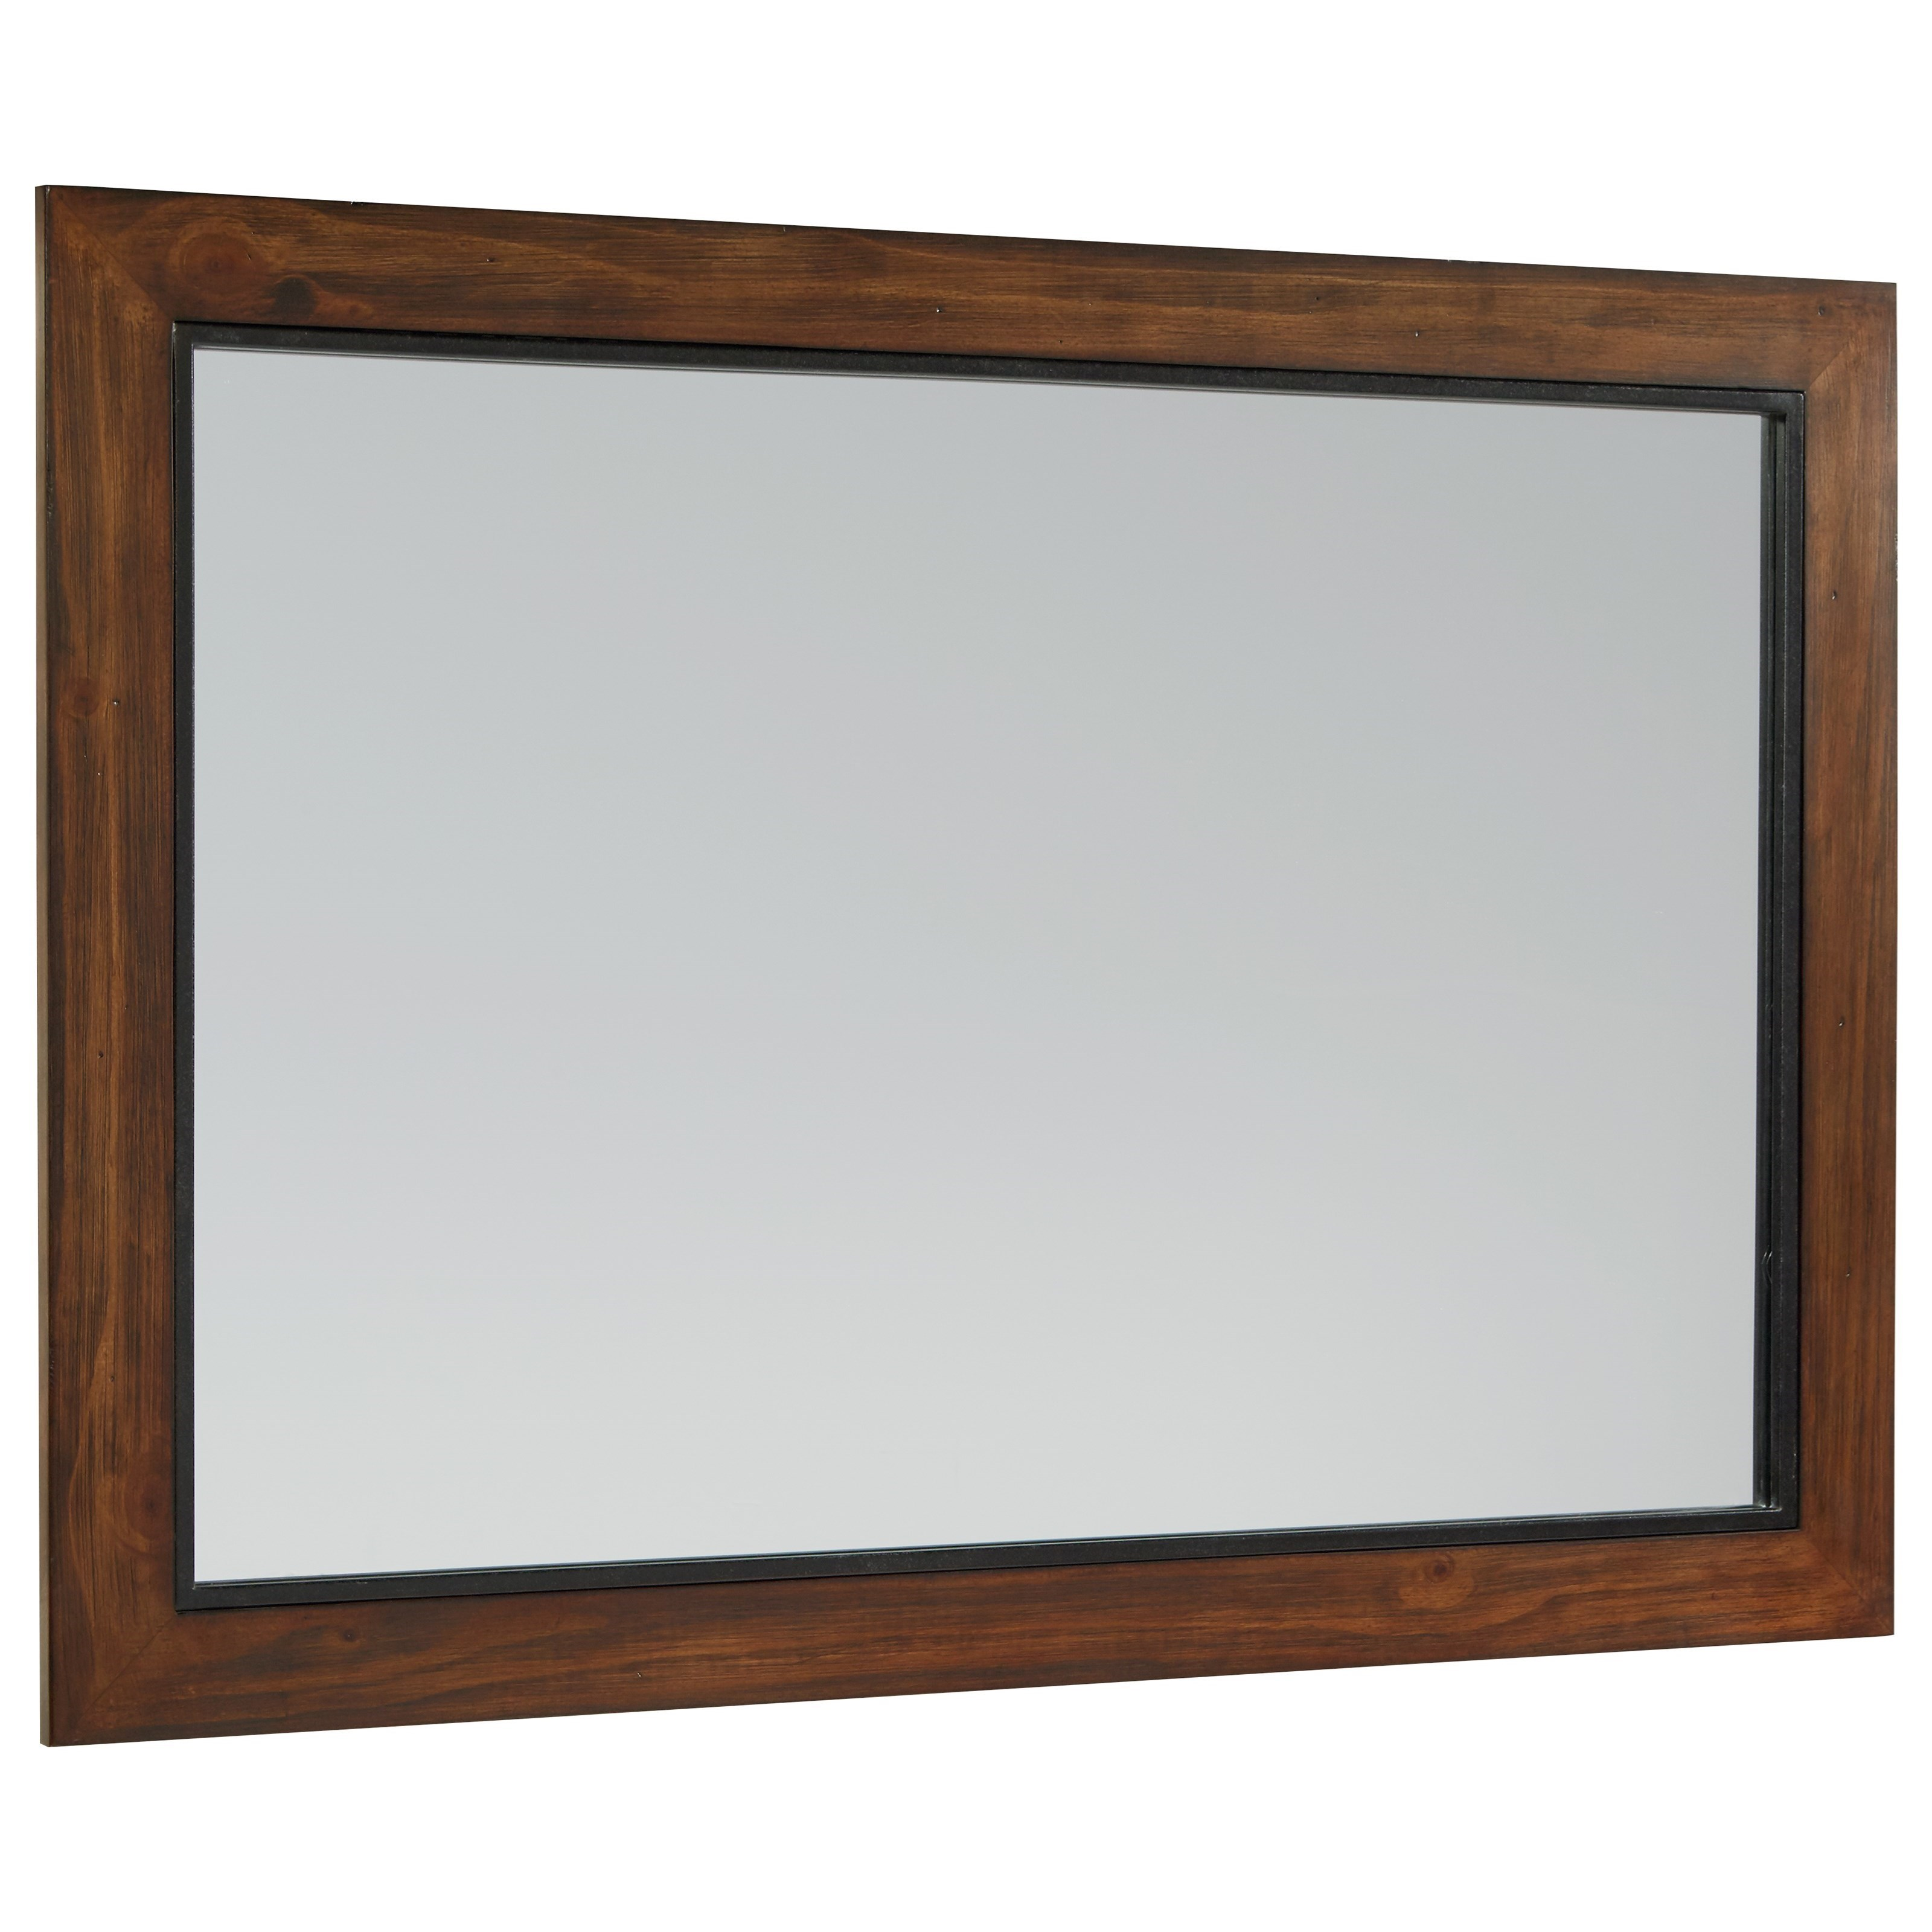 wood framed mirrors. Magnolia Home By Joanna Gaines IndustrialWood Framed Mirror Wood Mirrors